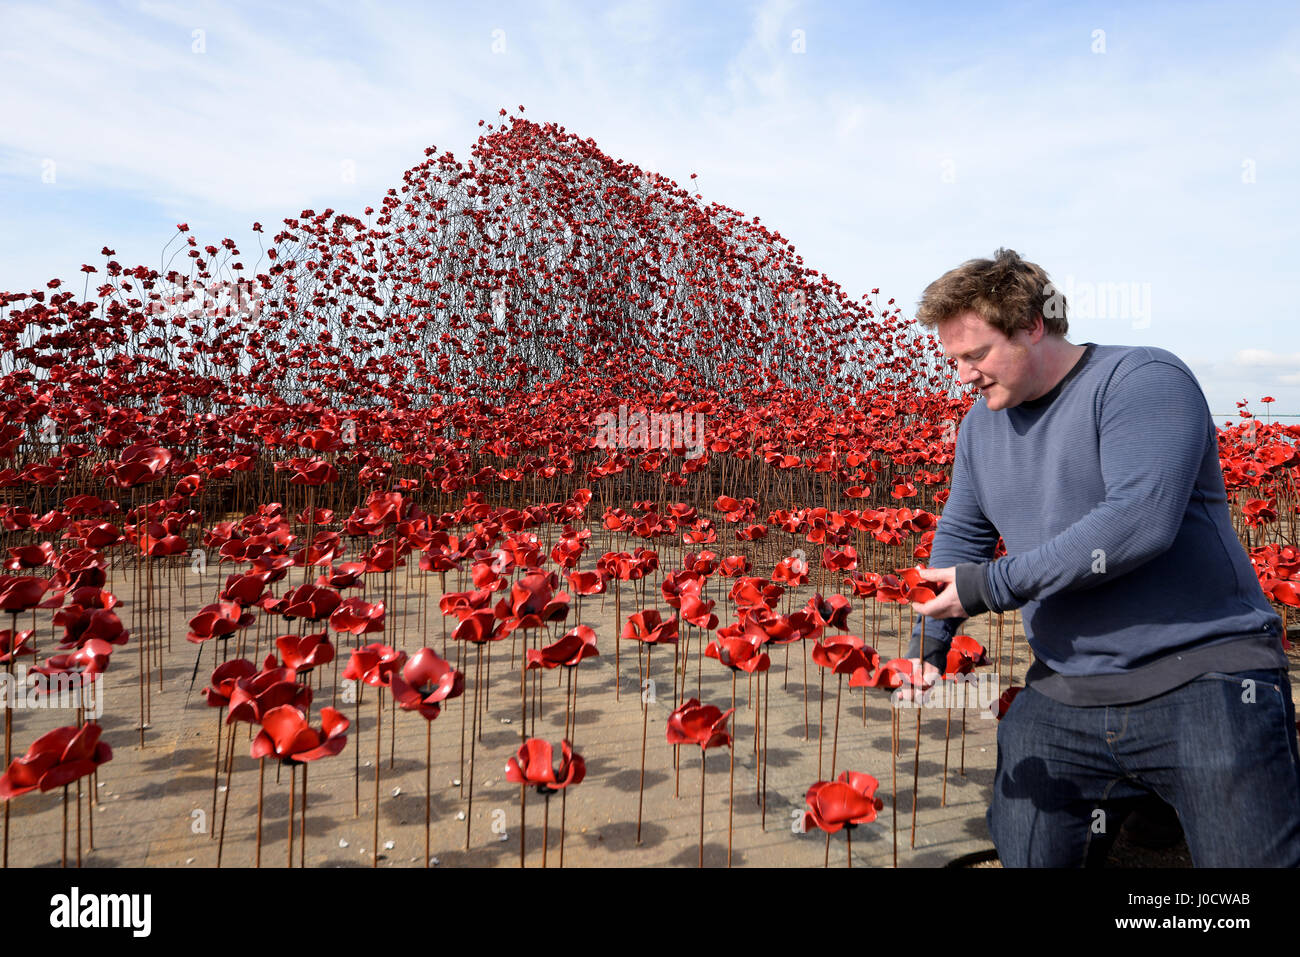 'Poppies: Wave' is one of two sections of the 'Blood Swept Lands and Seas of Red' art installation. - Stock Image